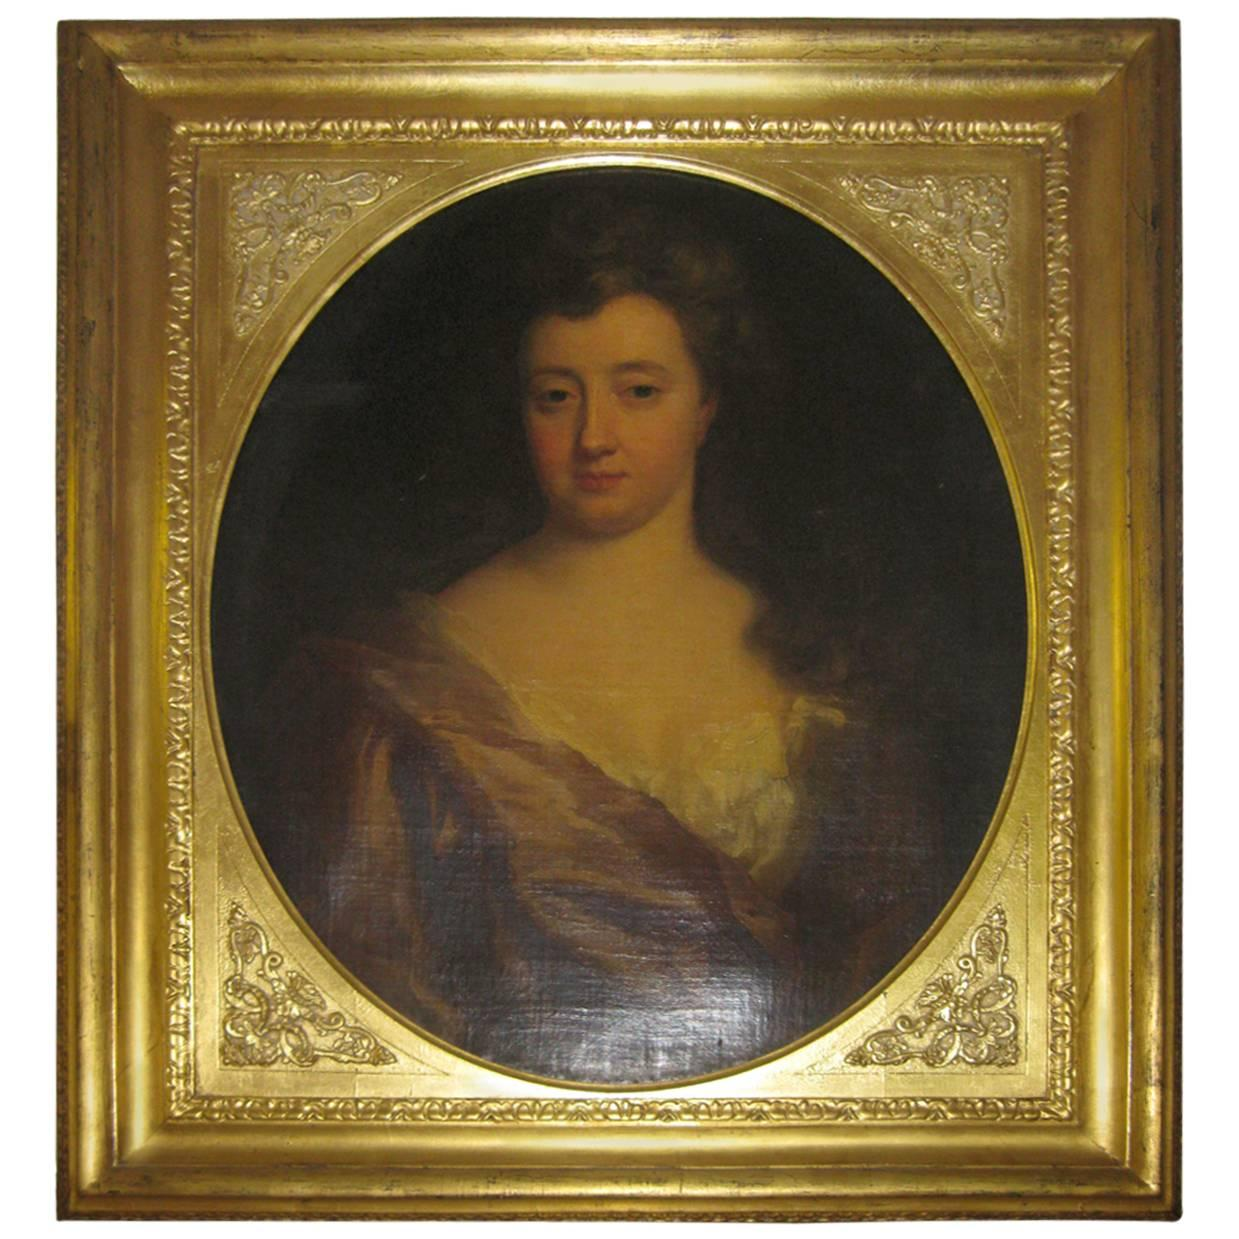 18th century Portrait of Lady Oil on Canvas in Giltwood Frame